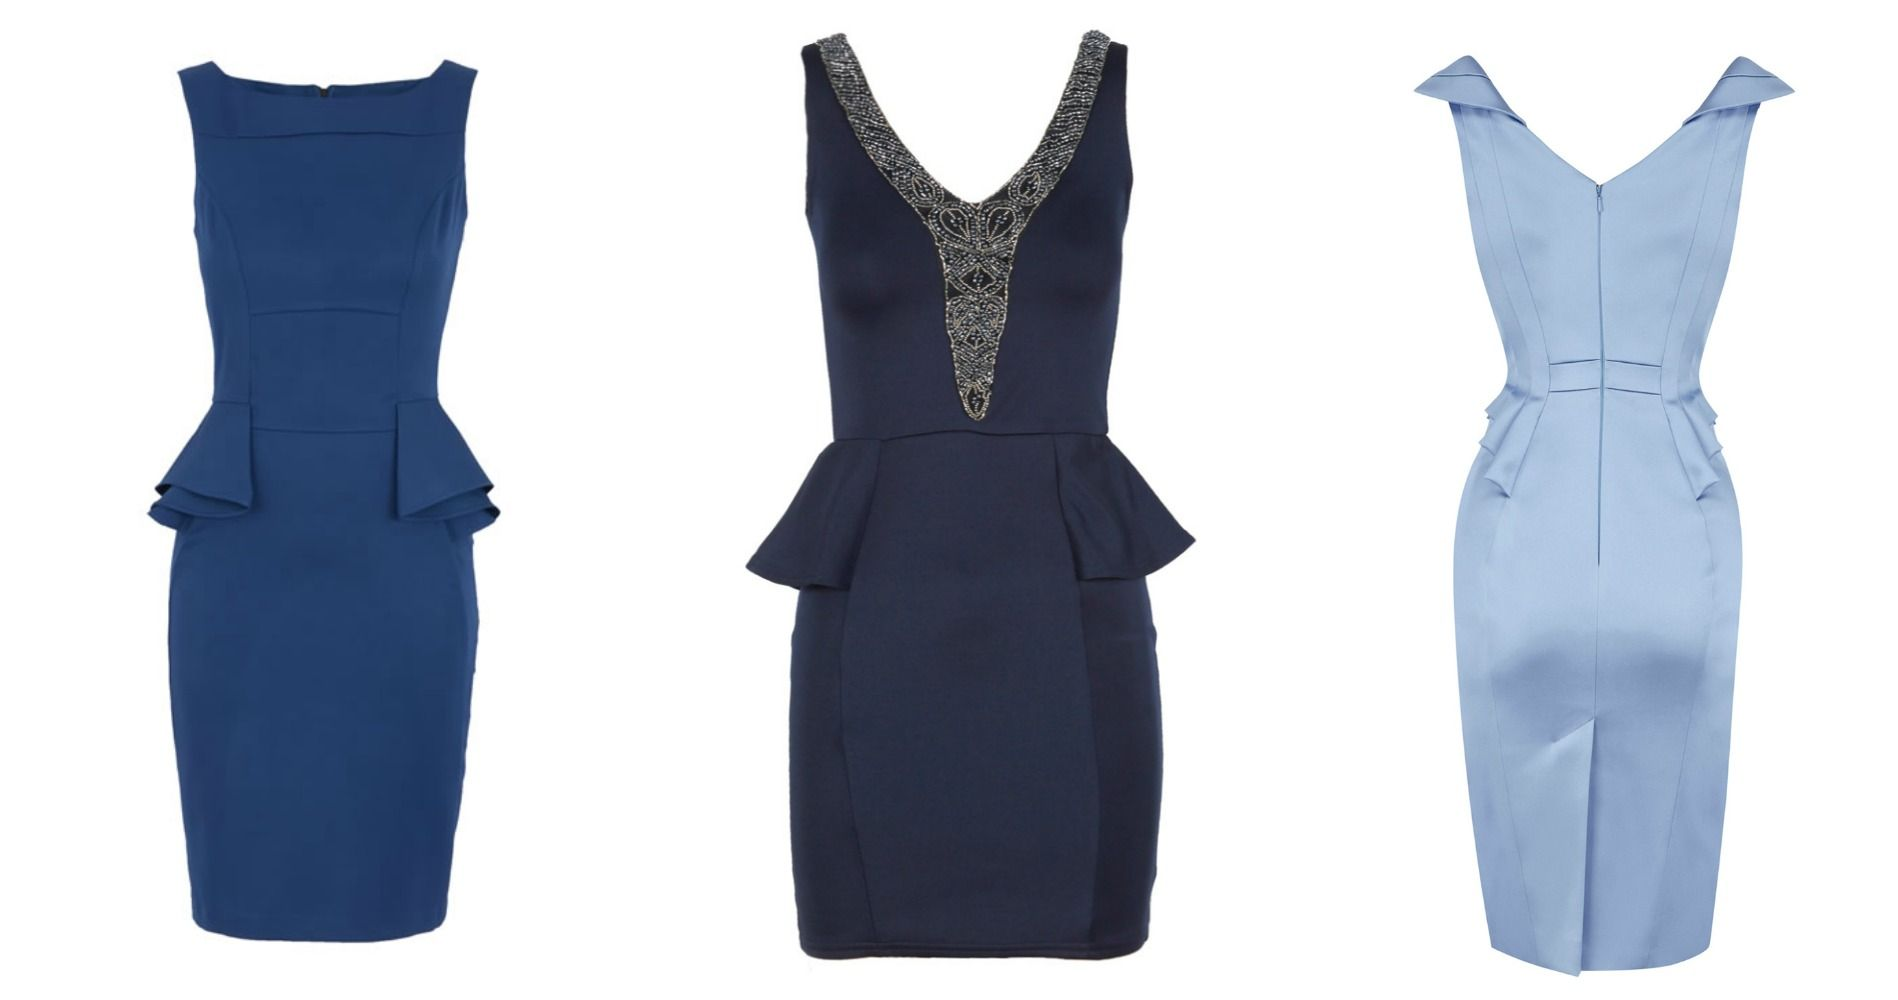 Dresses for a country wedding  What to Wear to a Country Wedding  Peplum Dresses  Peplum dresses